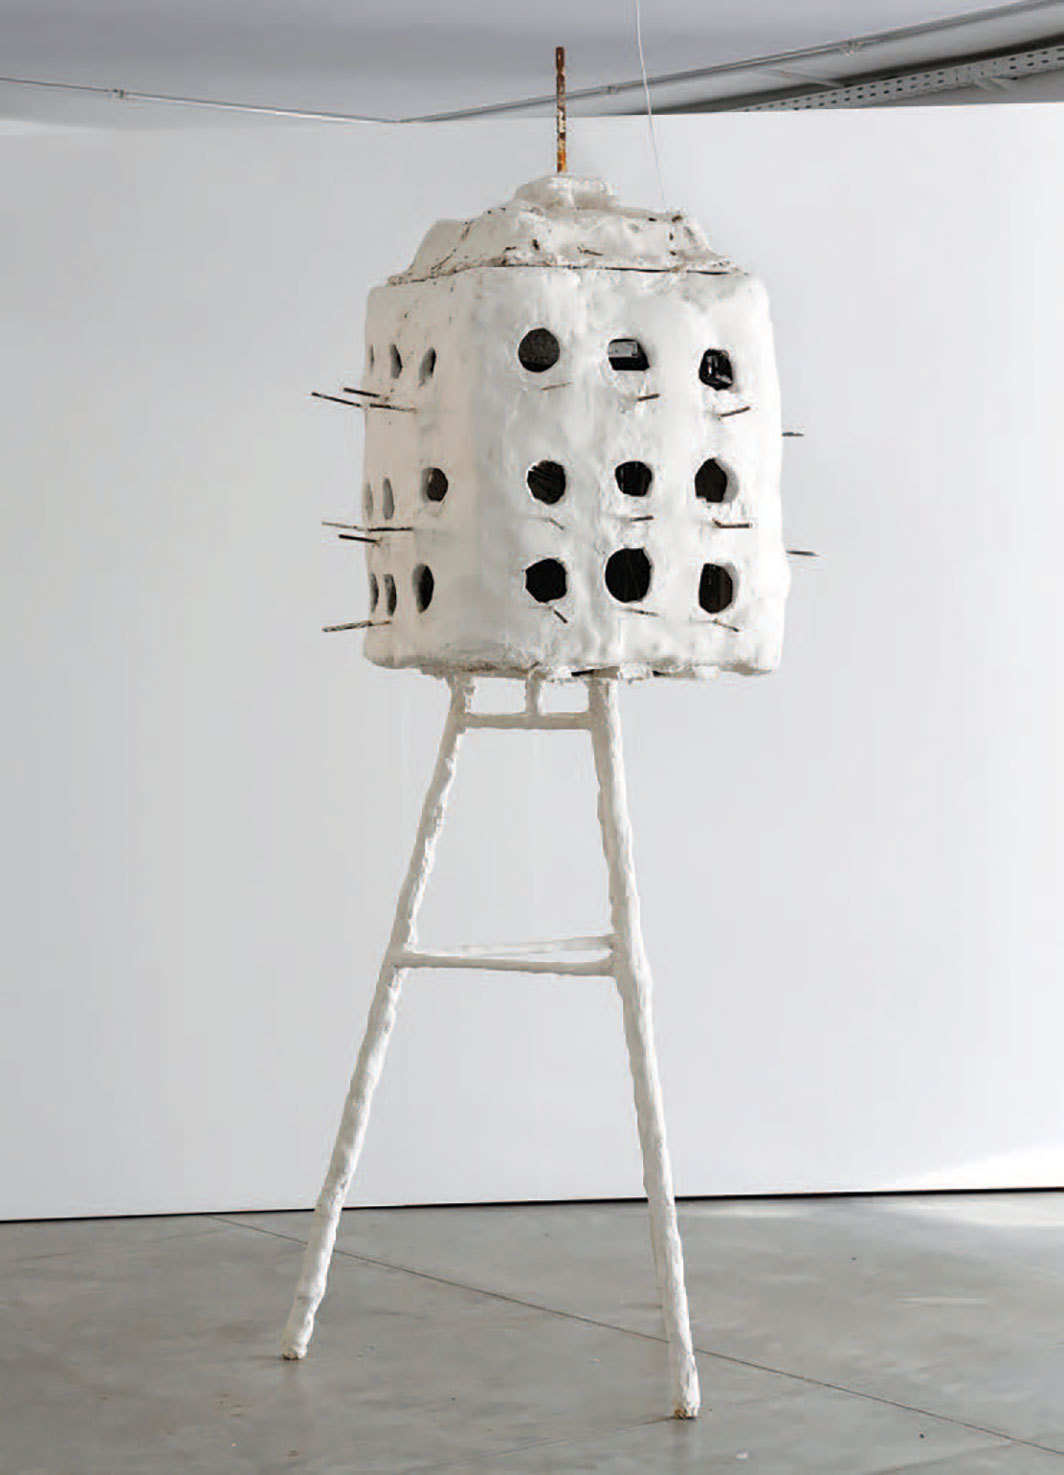 "Alex Ayed, Untitled (Beit El Hmam) (Pigeon House), 2019, steel, plaster, and pigeons, 12' 1⁄8"" ×  3' 3 3⁄8"" × 4' 3 1⁄8""."